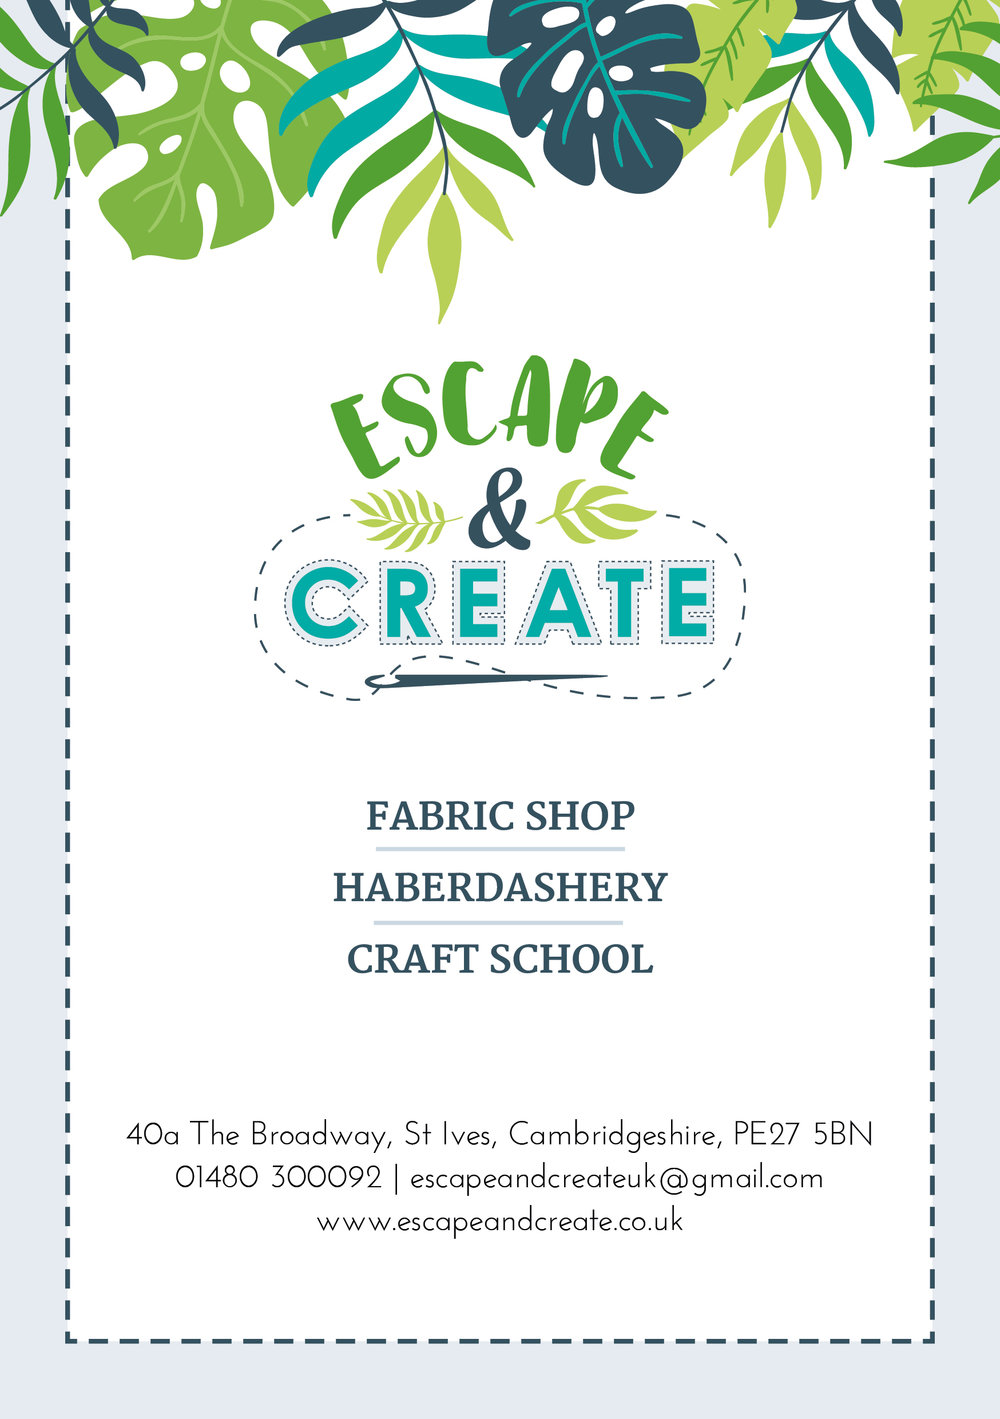 Krishna Solanki Designs - Escape & Create - A5 flyer